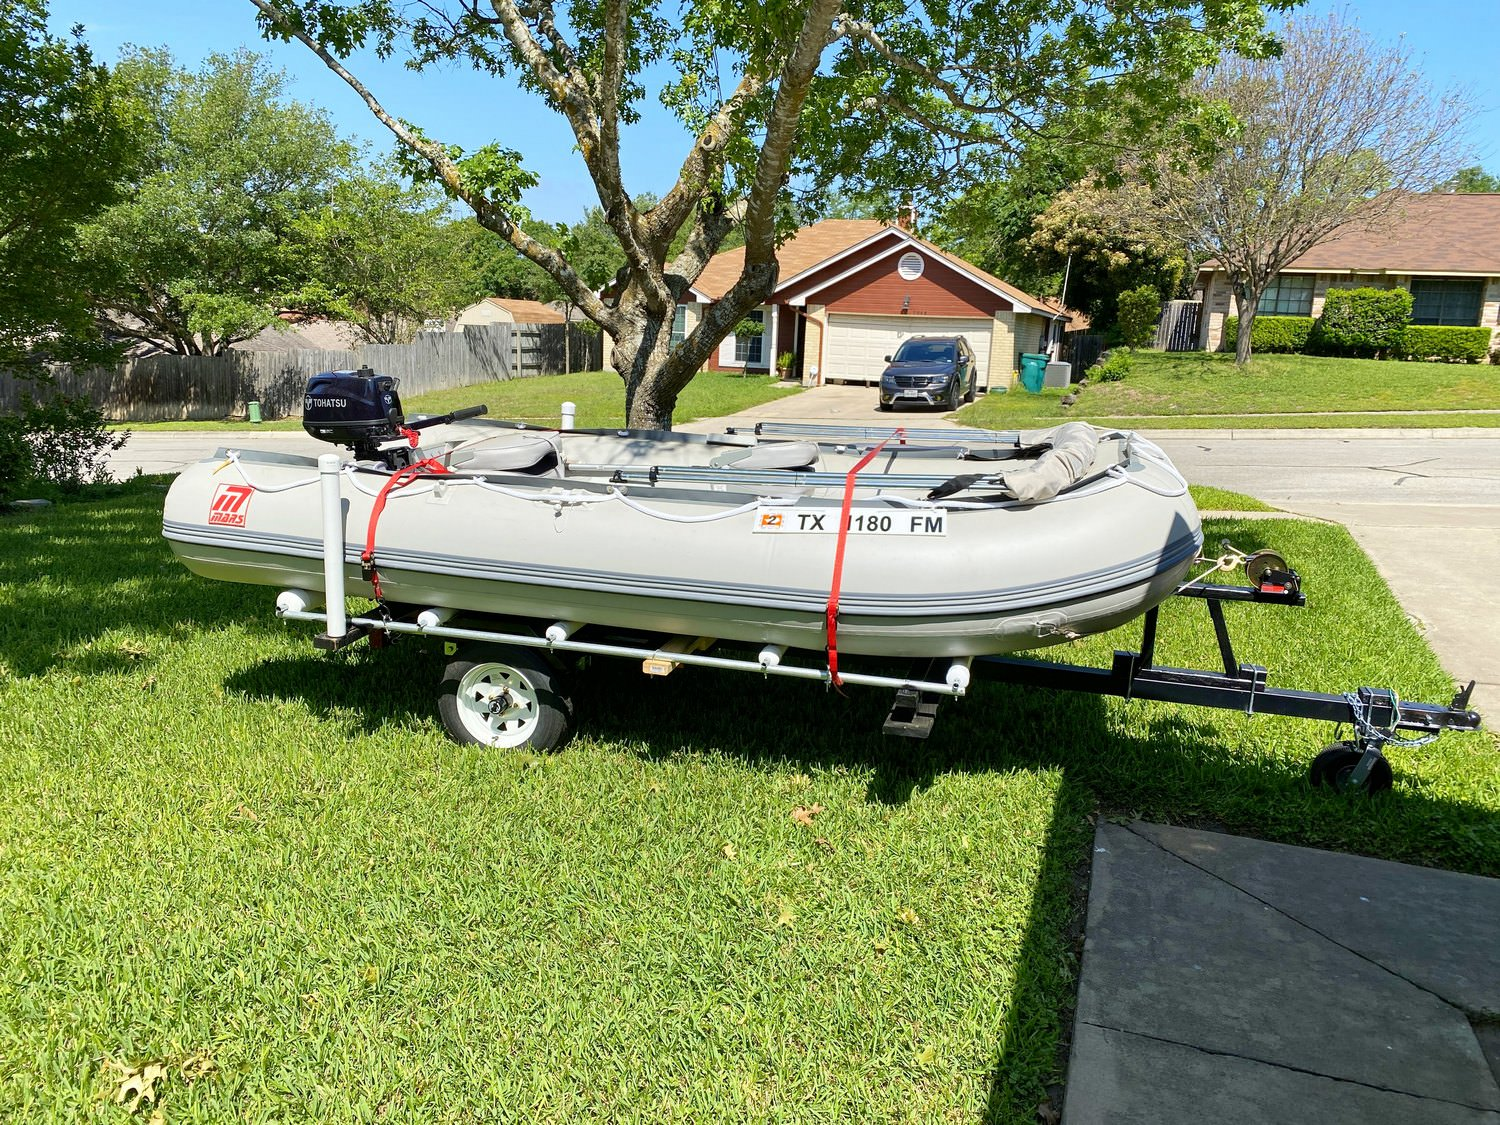 Mars Inflatable Dinghy Boat on a customized trailer